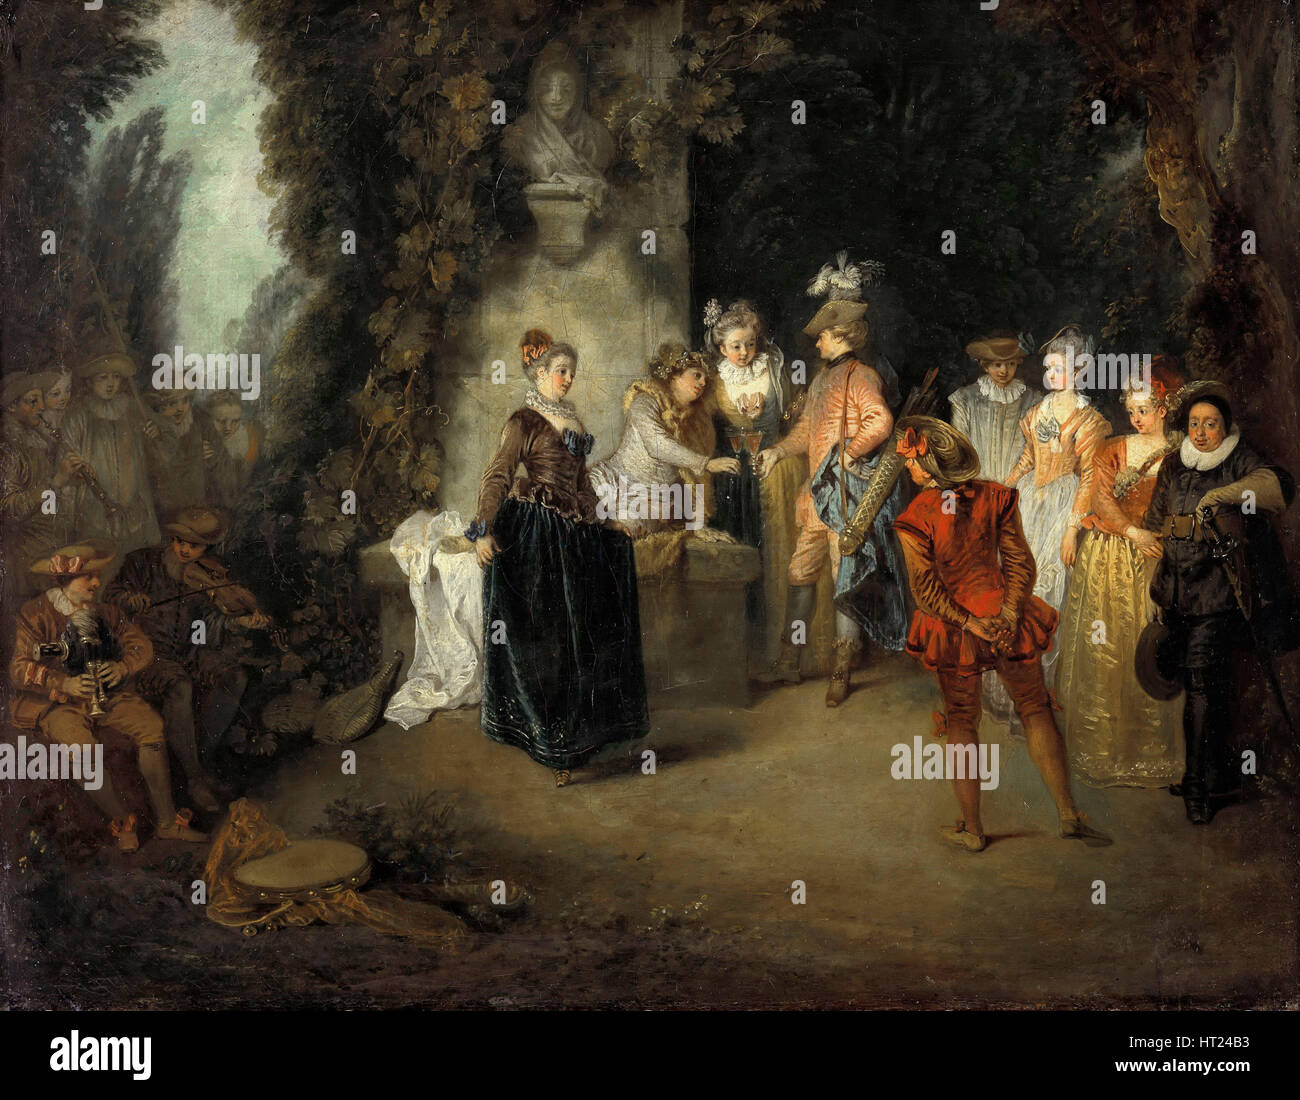 The French Comedy, after 1716. Artist: Watteau, Jean Antoine (1684-1721) - Stock Image